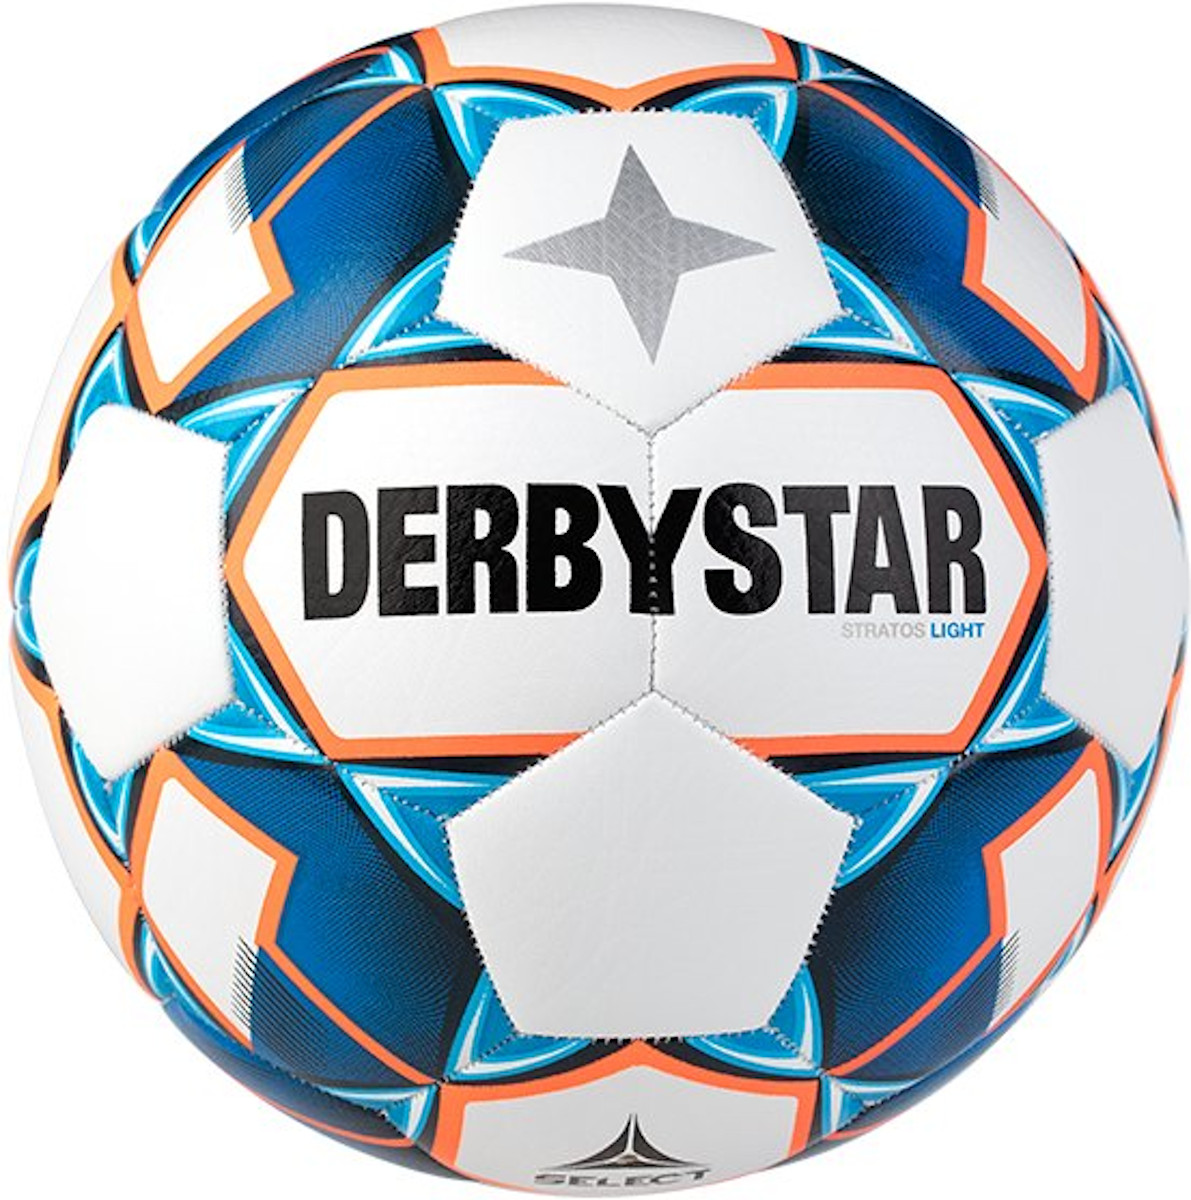 Ball Derbystar Stratos Light v20 350g training ball